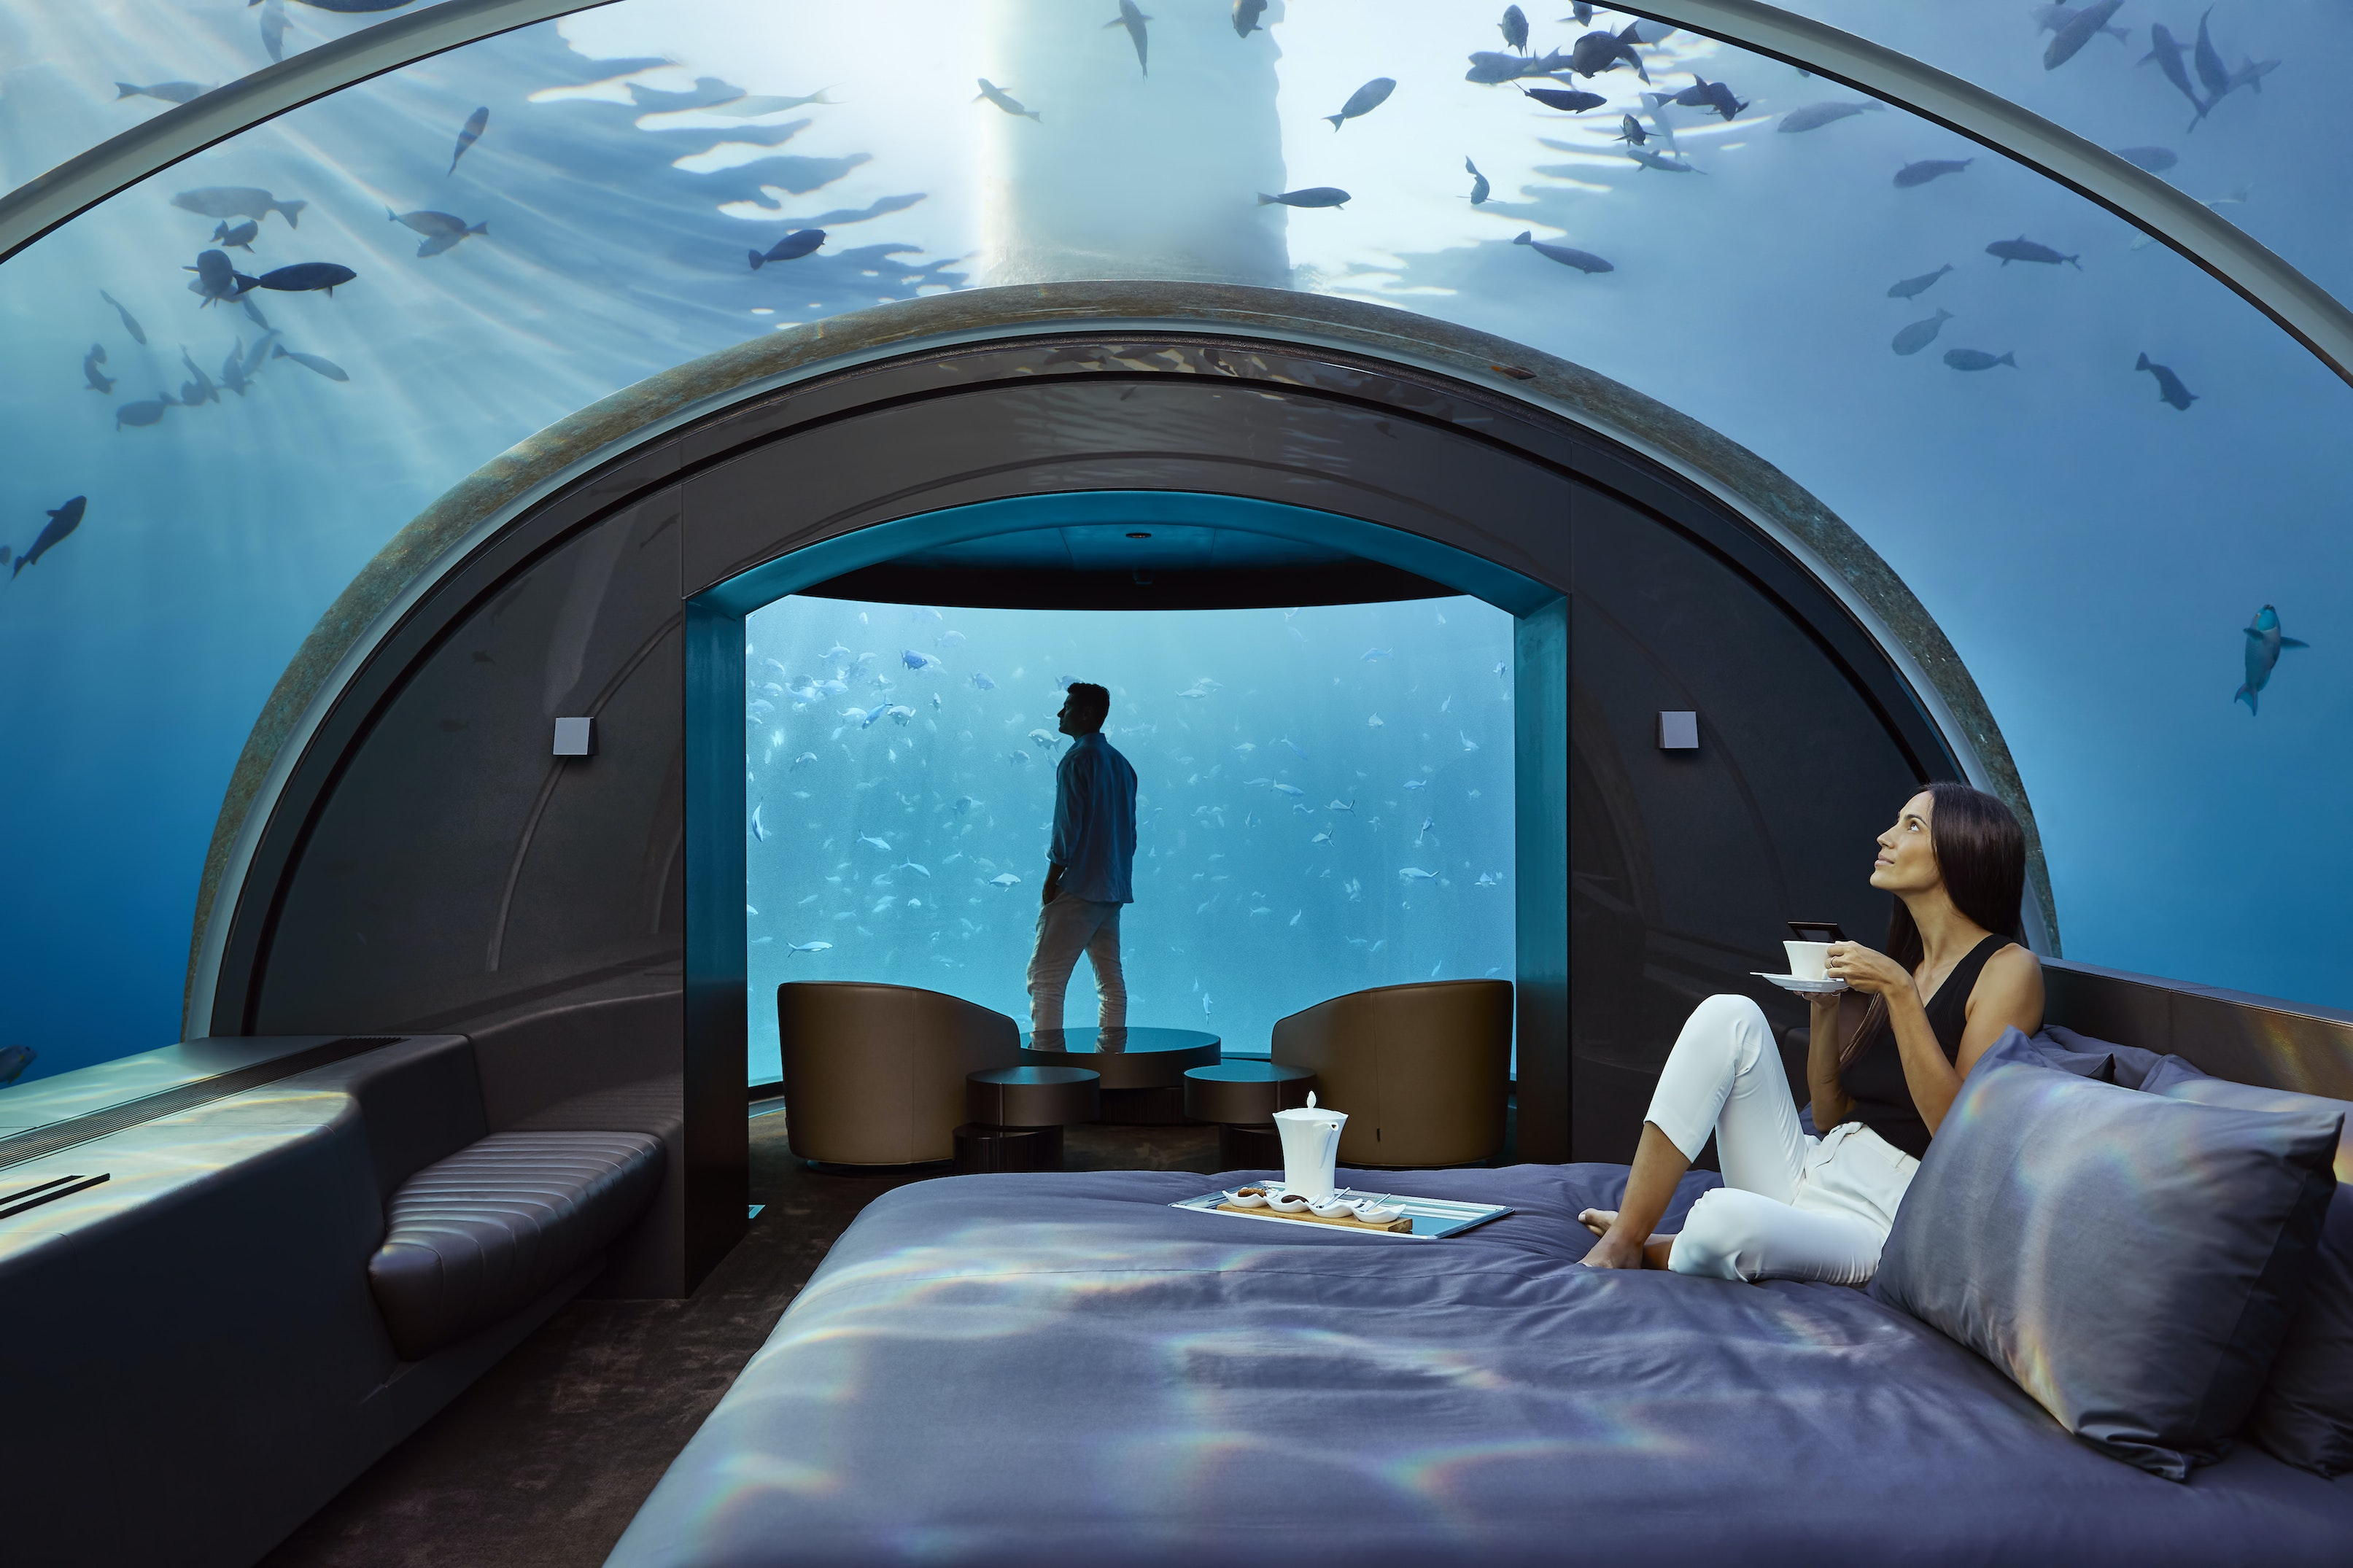 Book a $50,000-per-night, underwater, glass-enclosed villa at the Conrad Maldives Rangali Island and receive Hilton Honors Diamond status for a year.